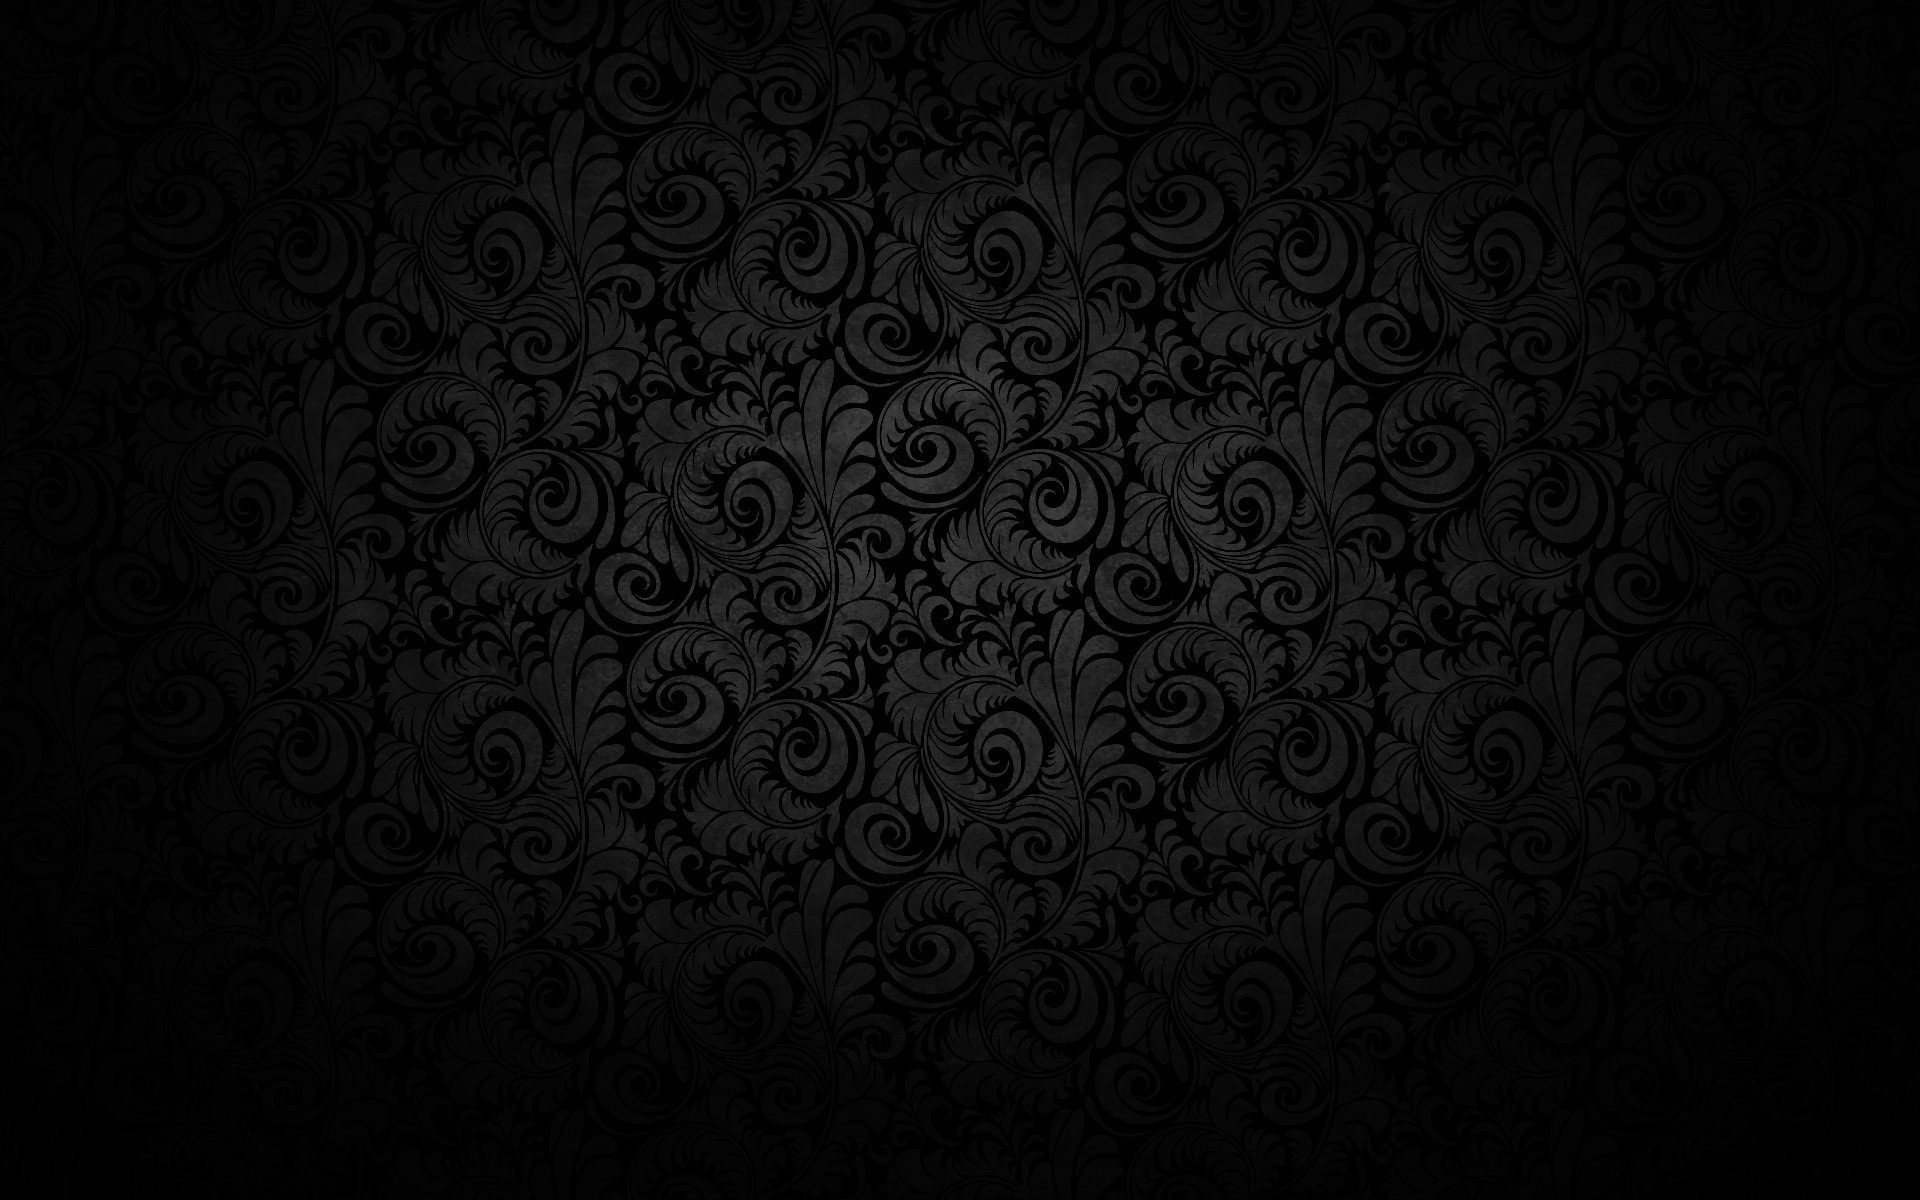 Black Background wallpaper   742082 1920x1200